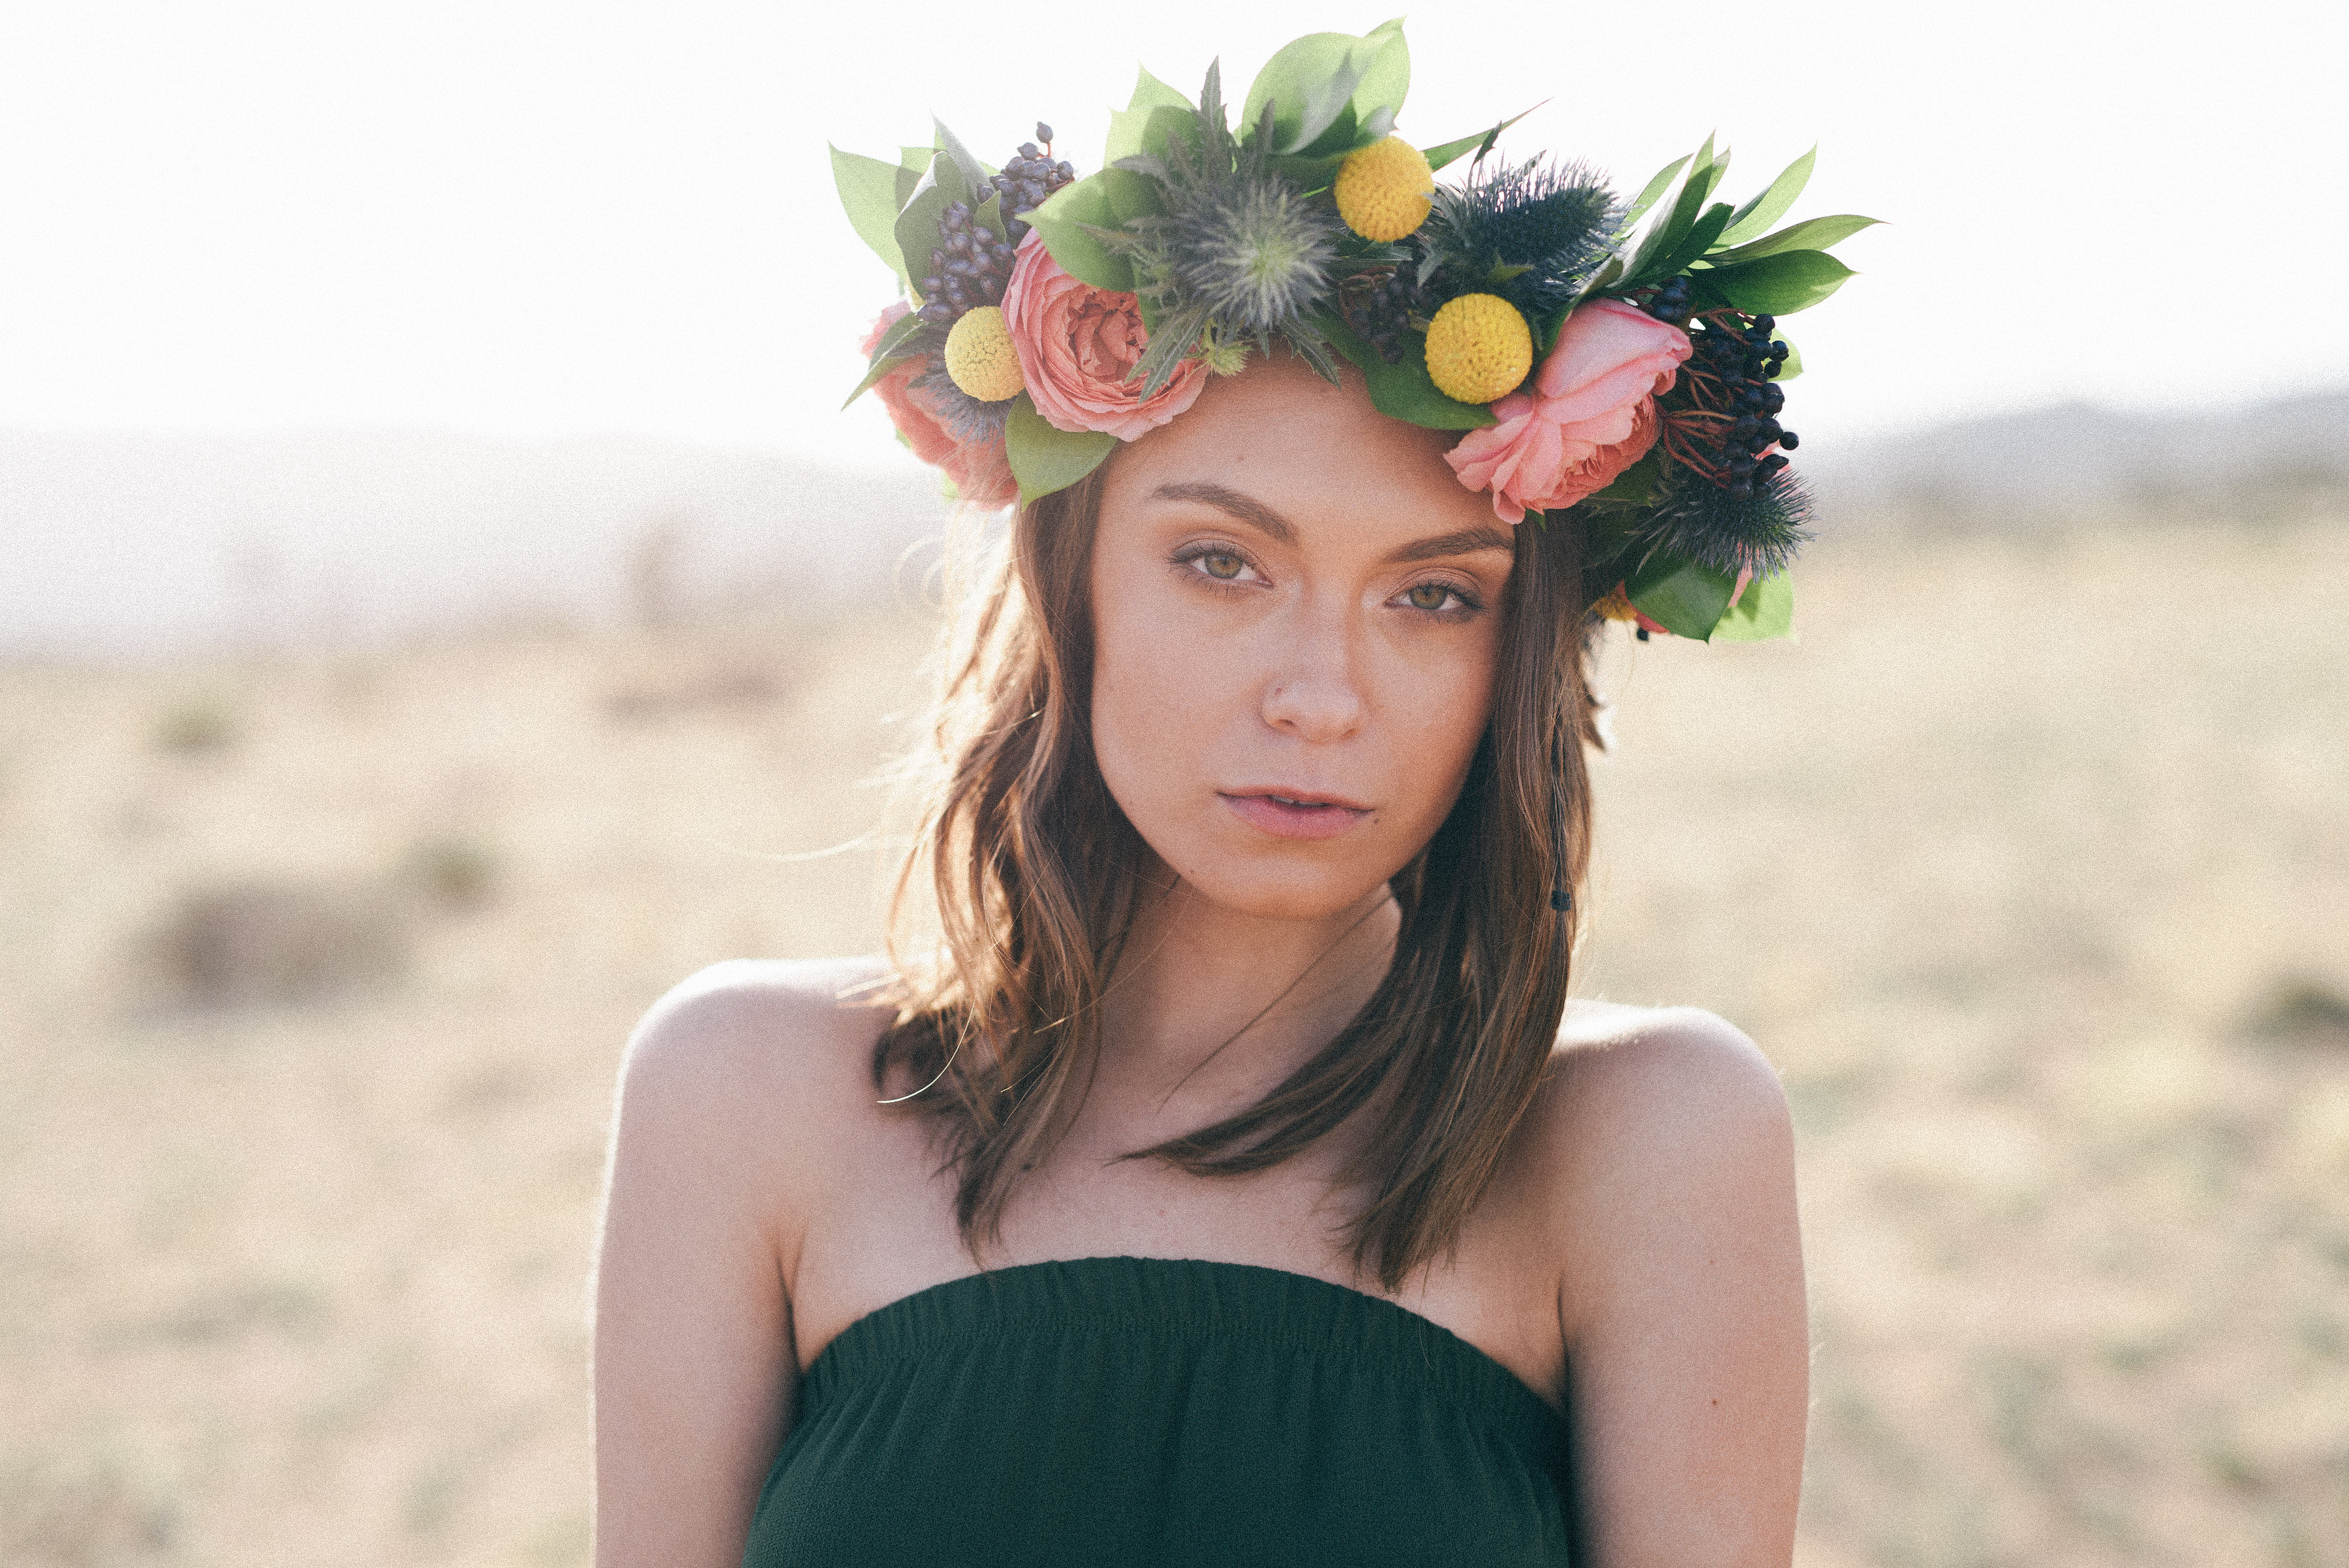 Flowers_By_Azalea_Flower_Crown_Bohemian